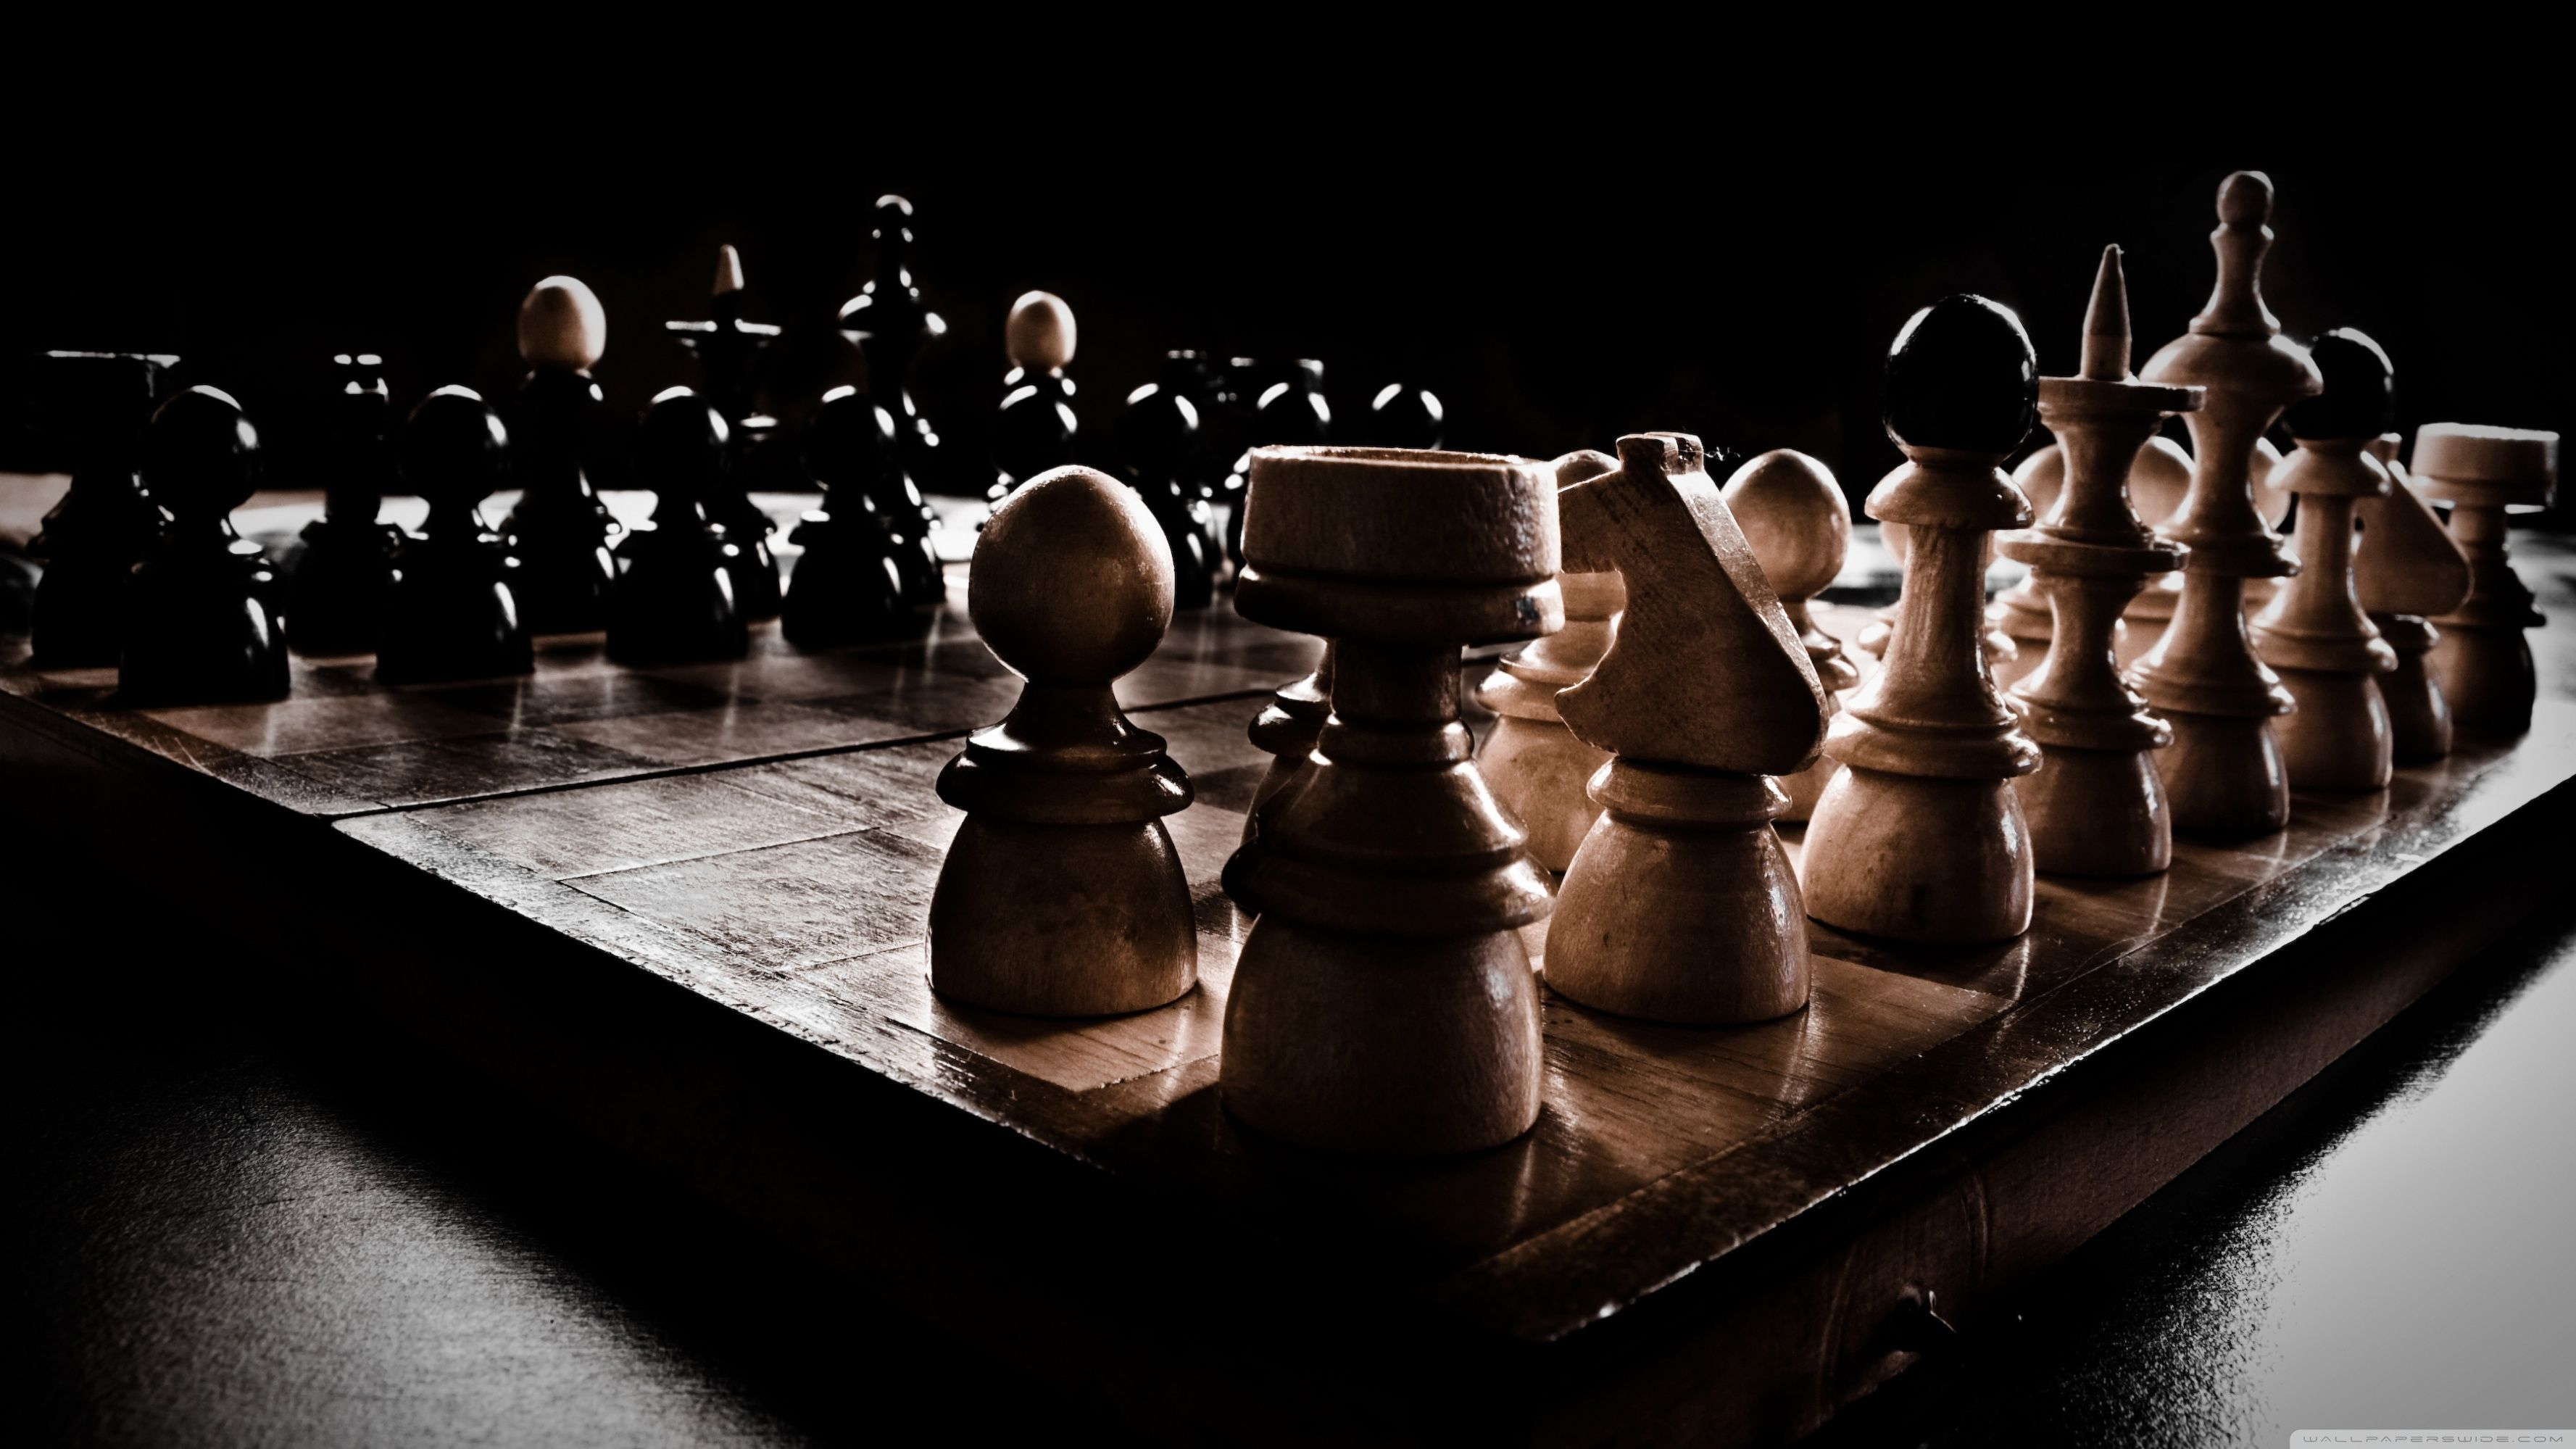 chess wallpaper collection for free hd wallpapers